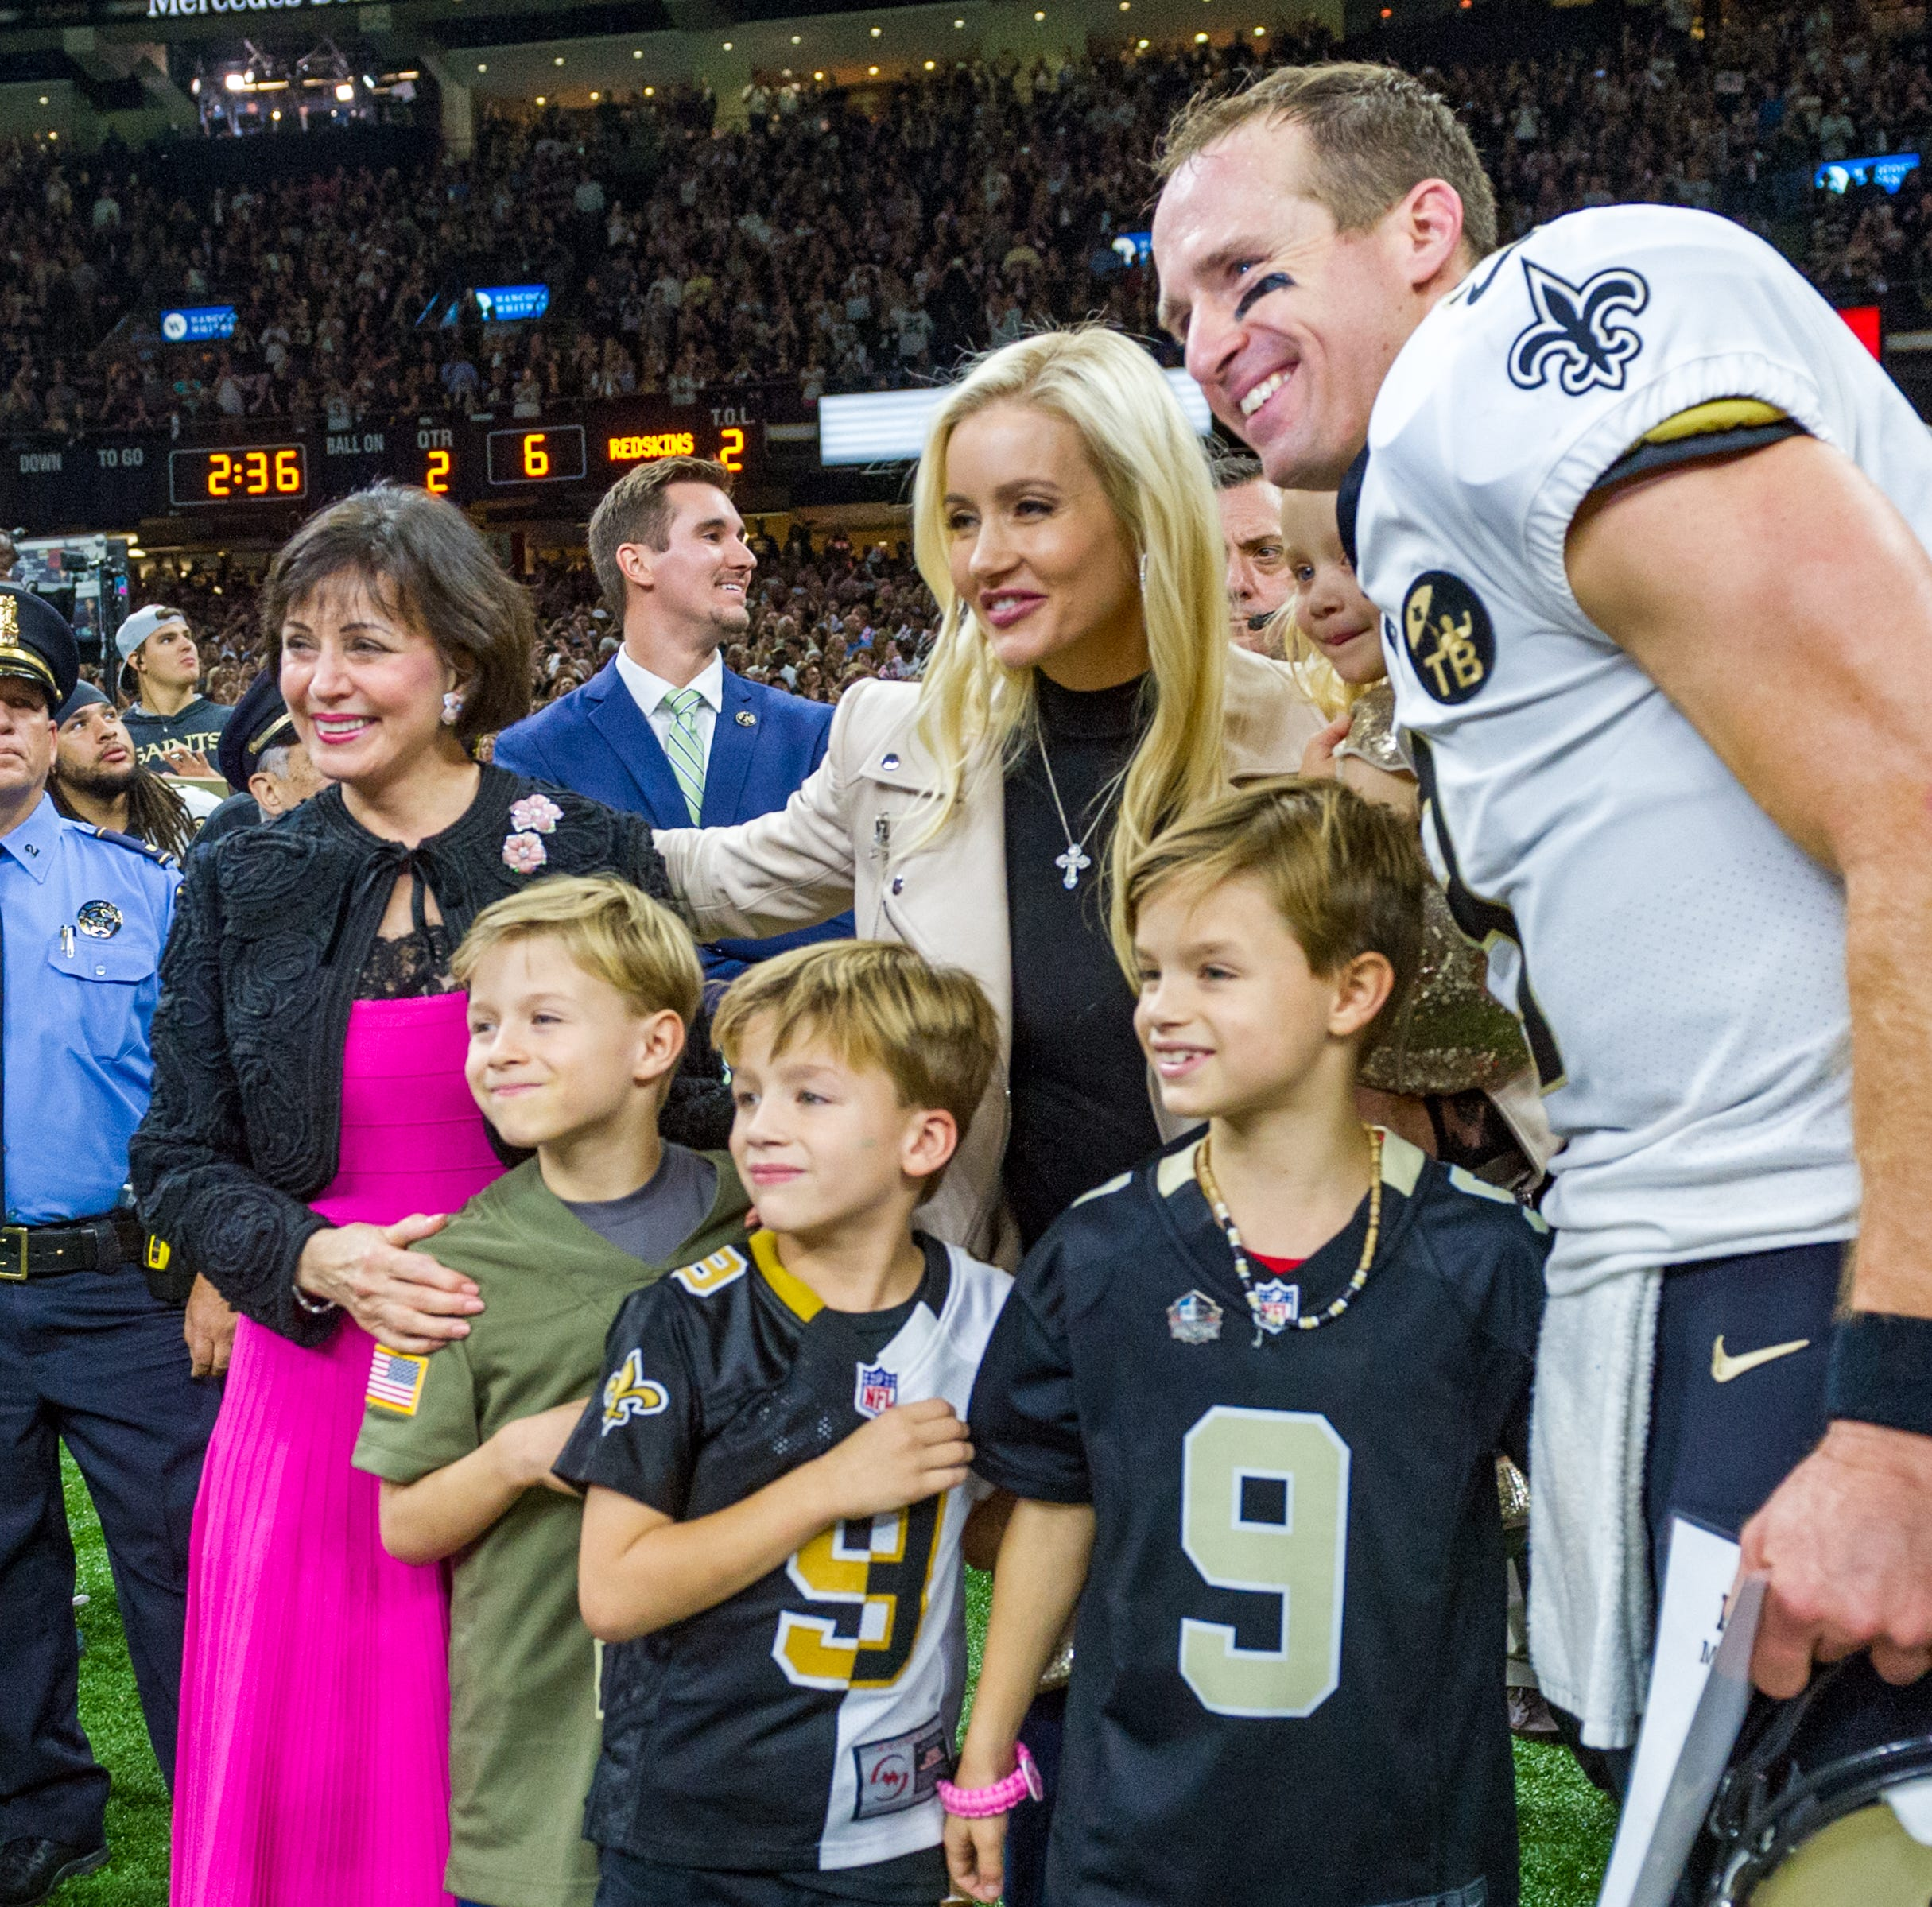 The Big Breezy: Drew Brees becomes NFL No. 1 passer, takes Saints to easy win over 'Skins